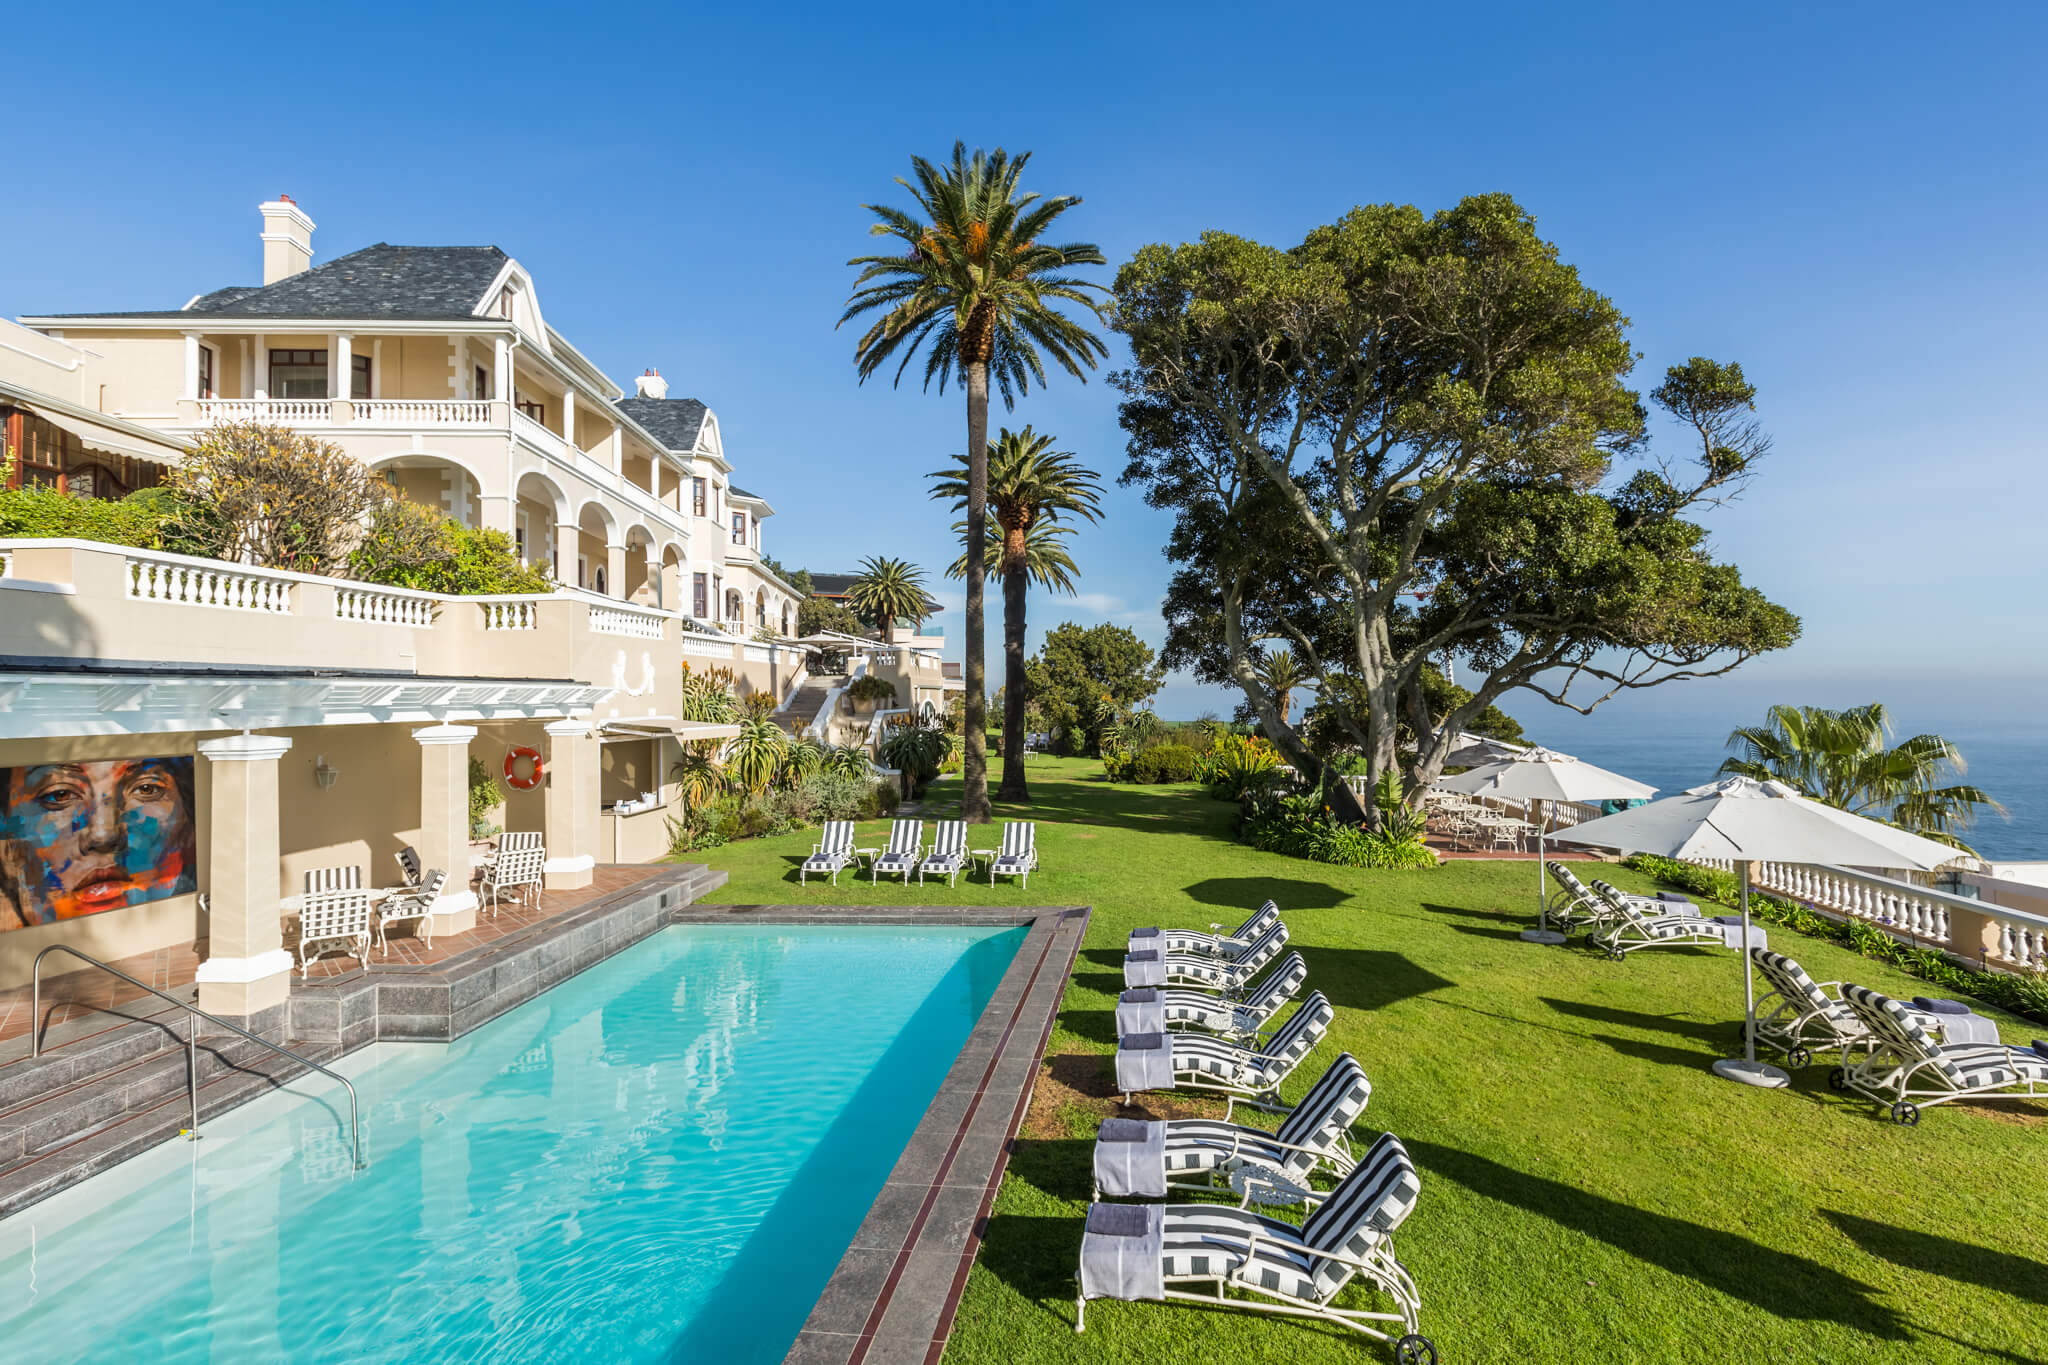 Pool Area at the Ellerman House